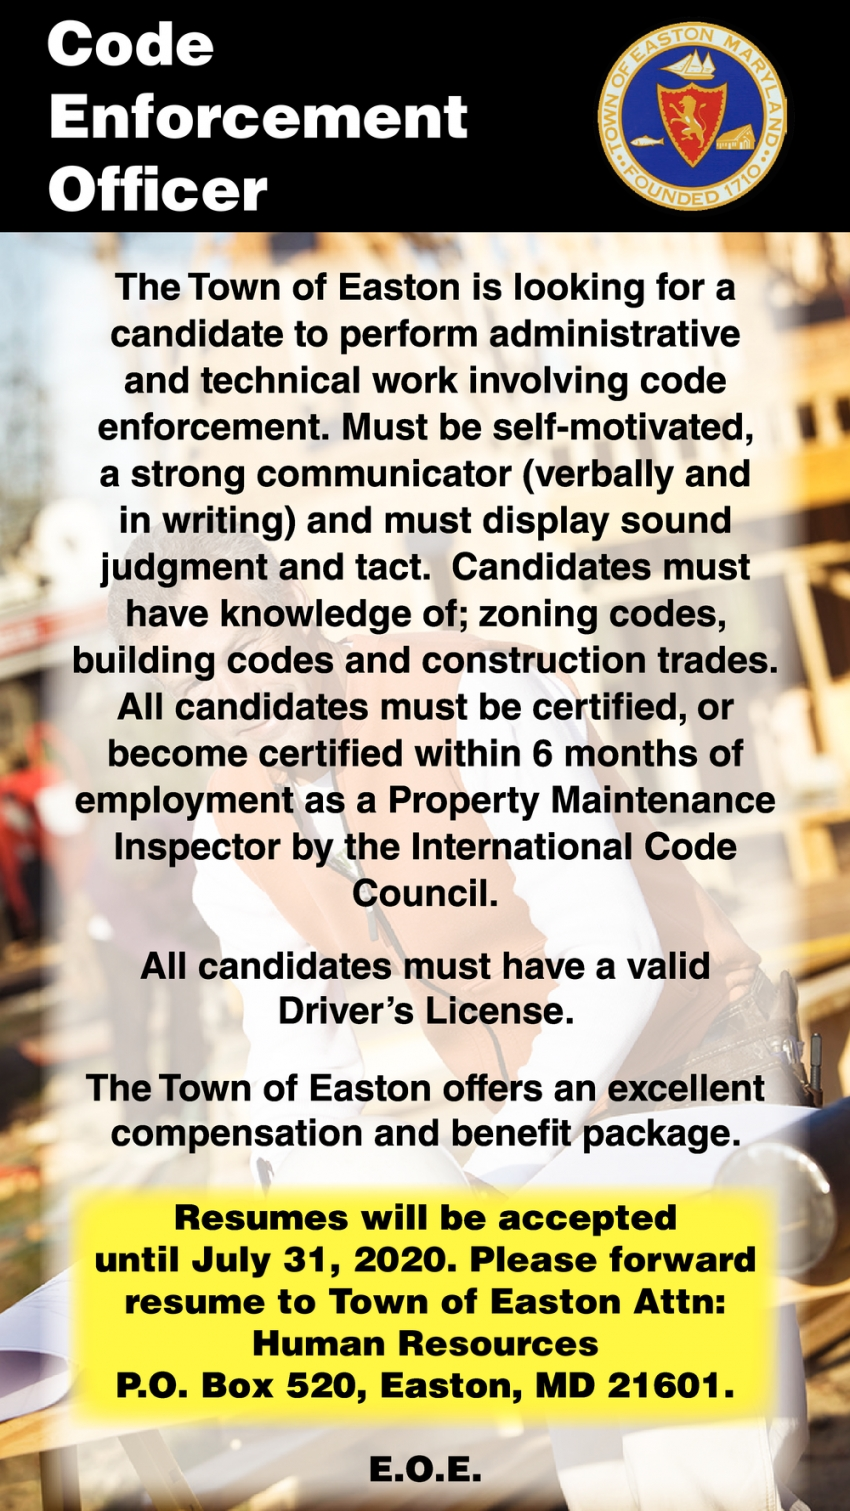 Code Enforcement Officer Needed